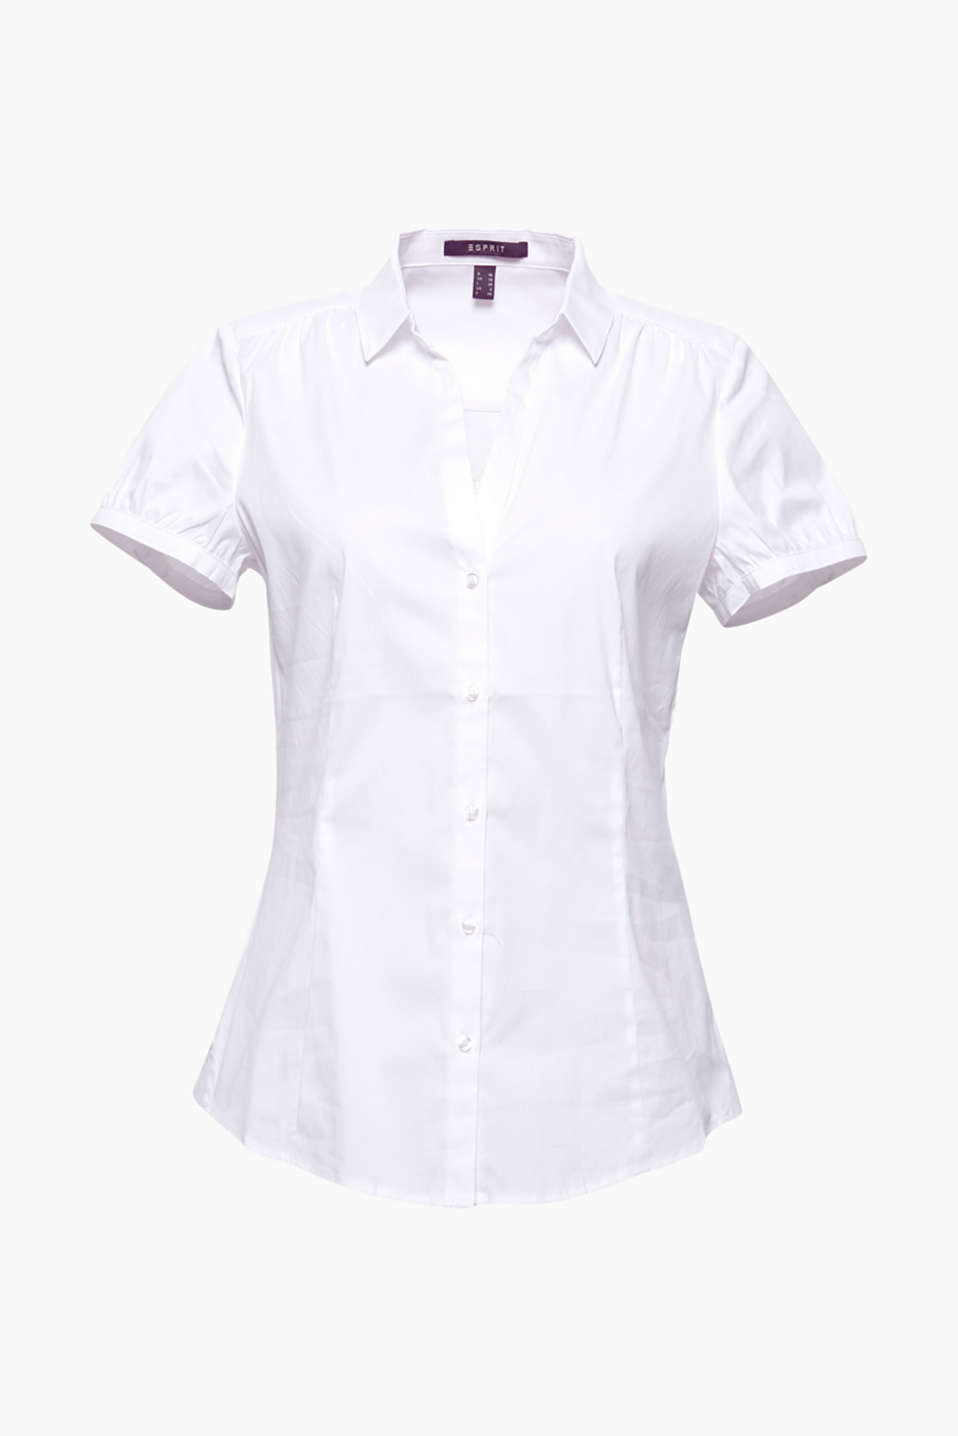 lightweight basic blouse with a collar and a V-neckline in an easy-care and durable cotton-polyamide blend